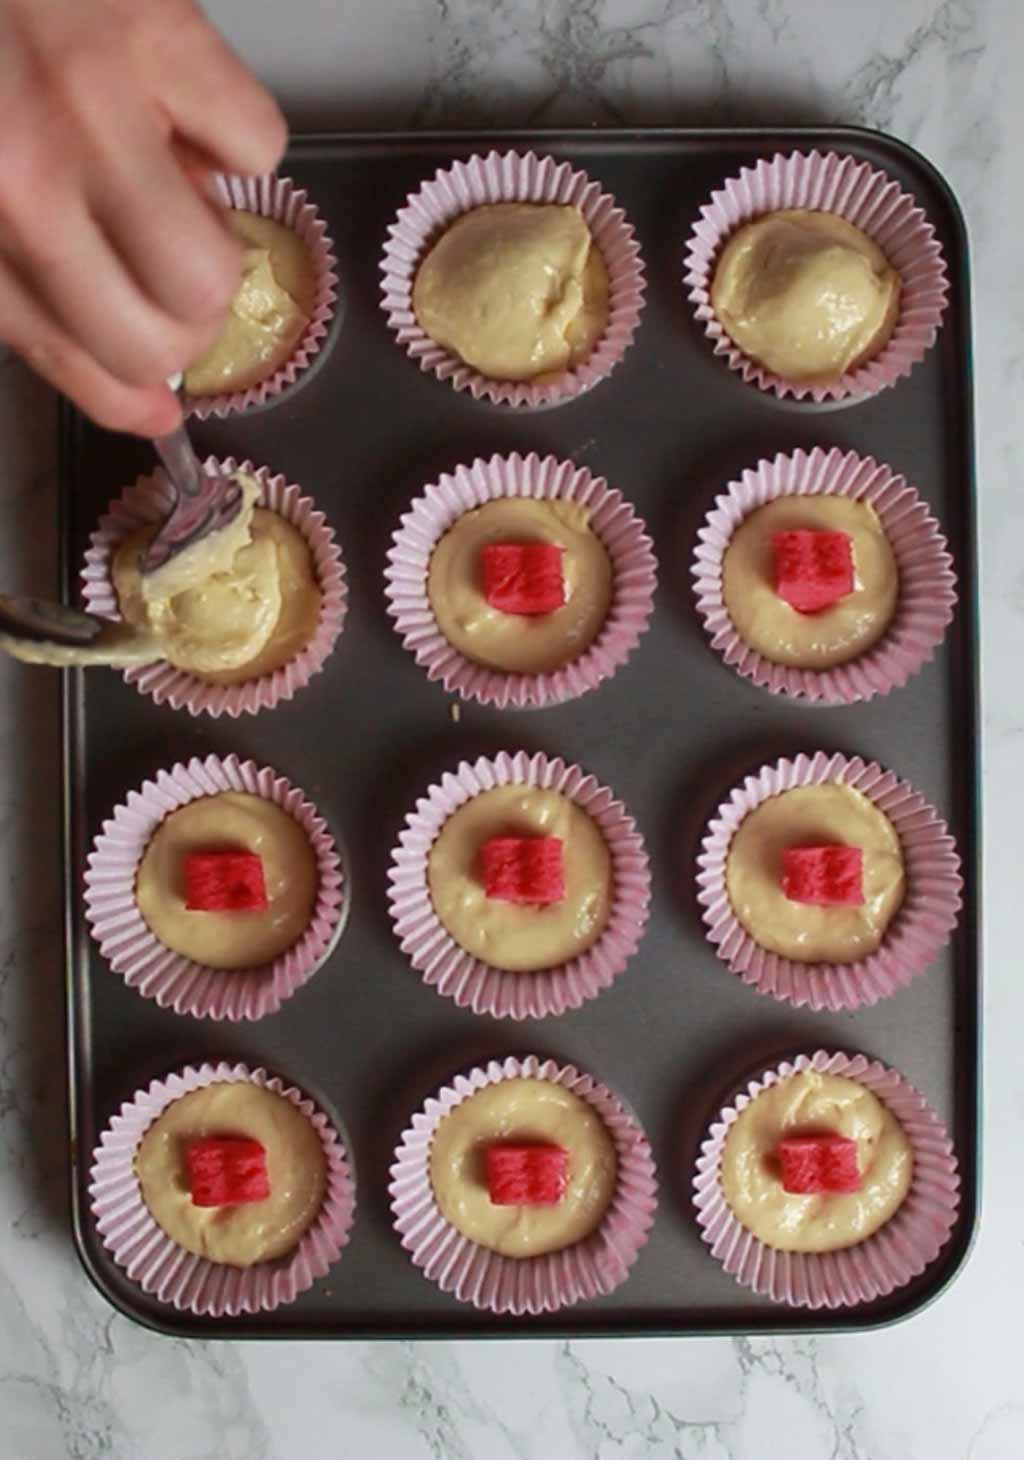 Covering The Hearts In The Cake Mix